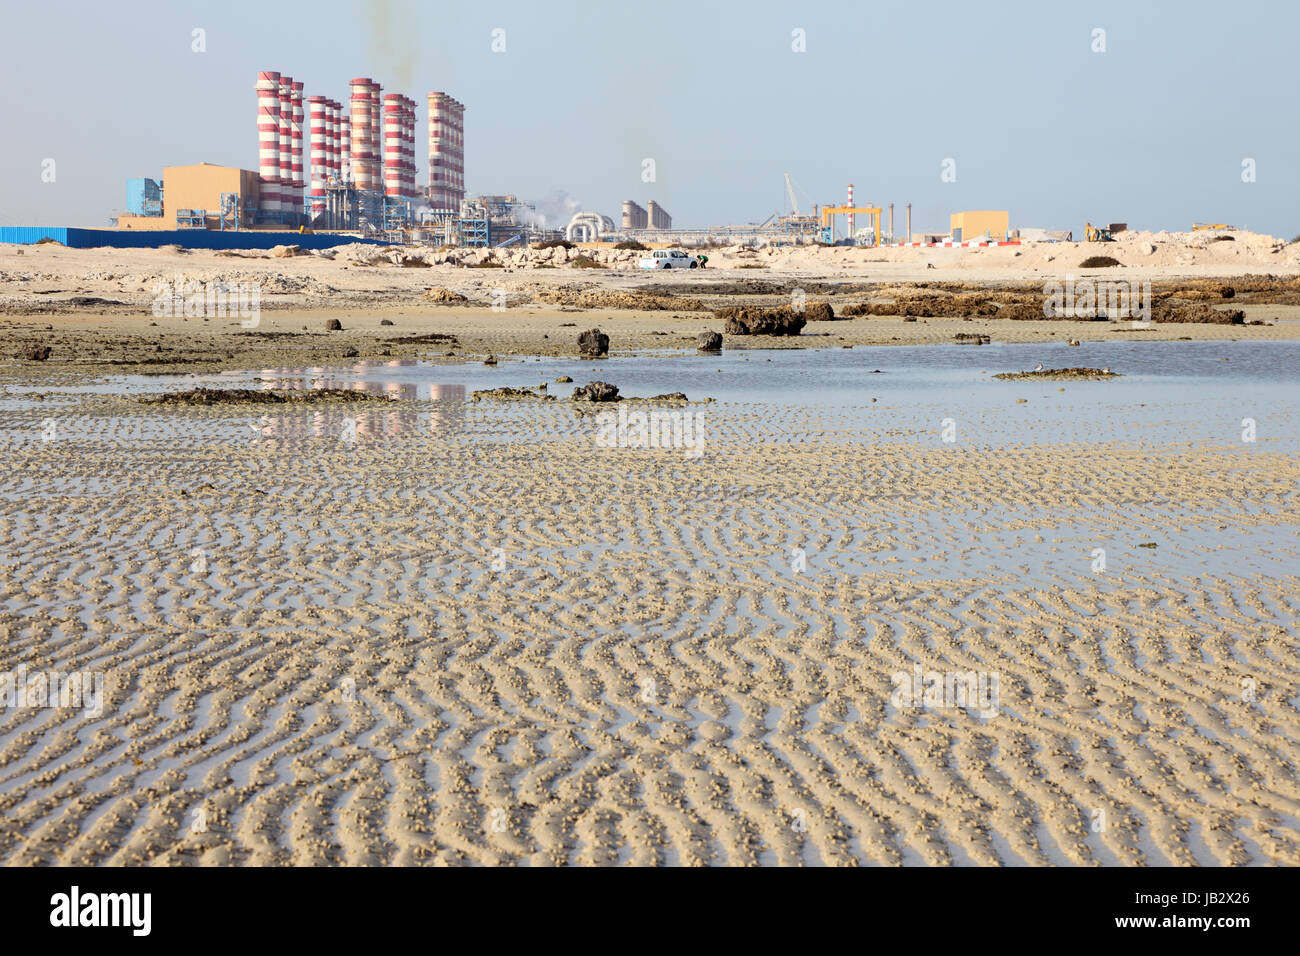 Qatar Gas Stock Photos & Qatar Gas Stock Images - Page 3 - Alamy